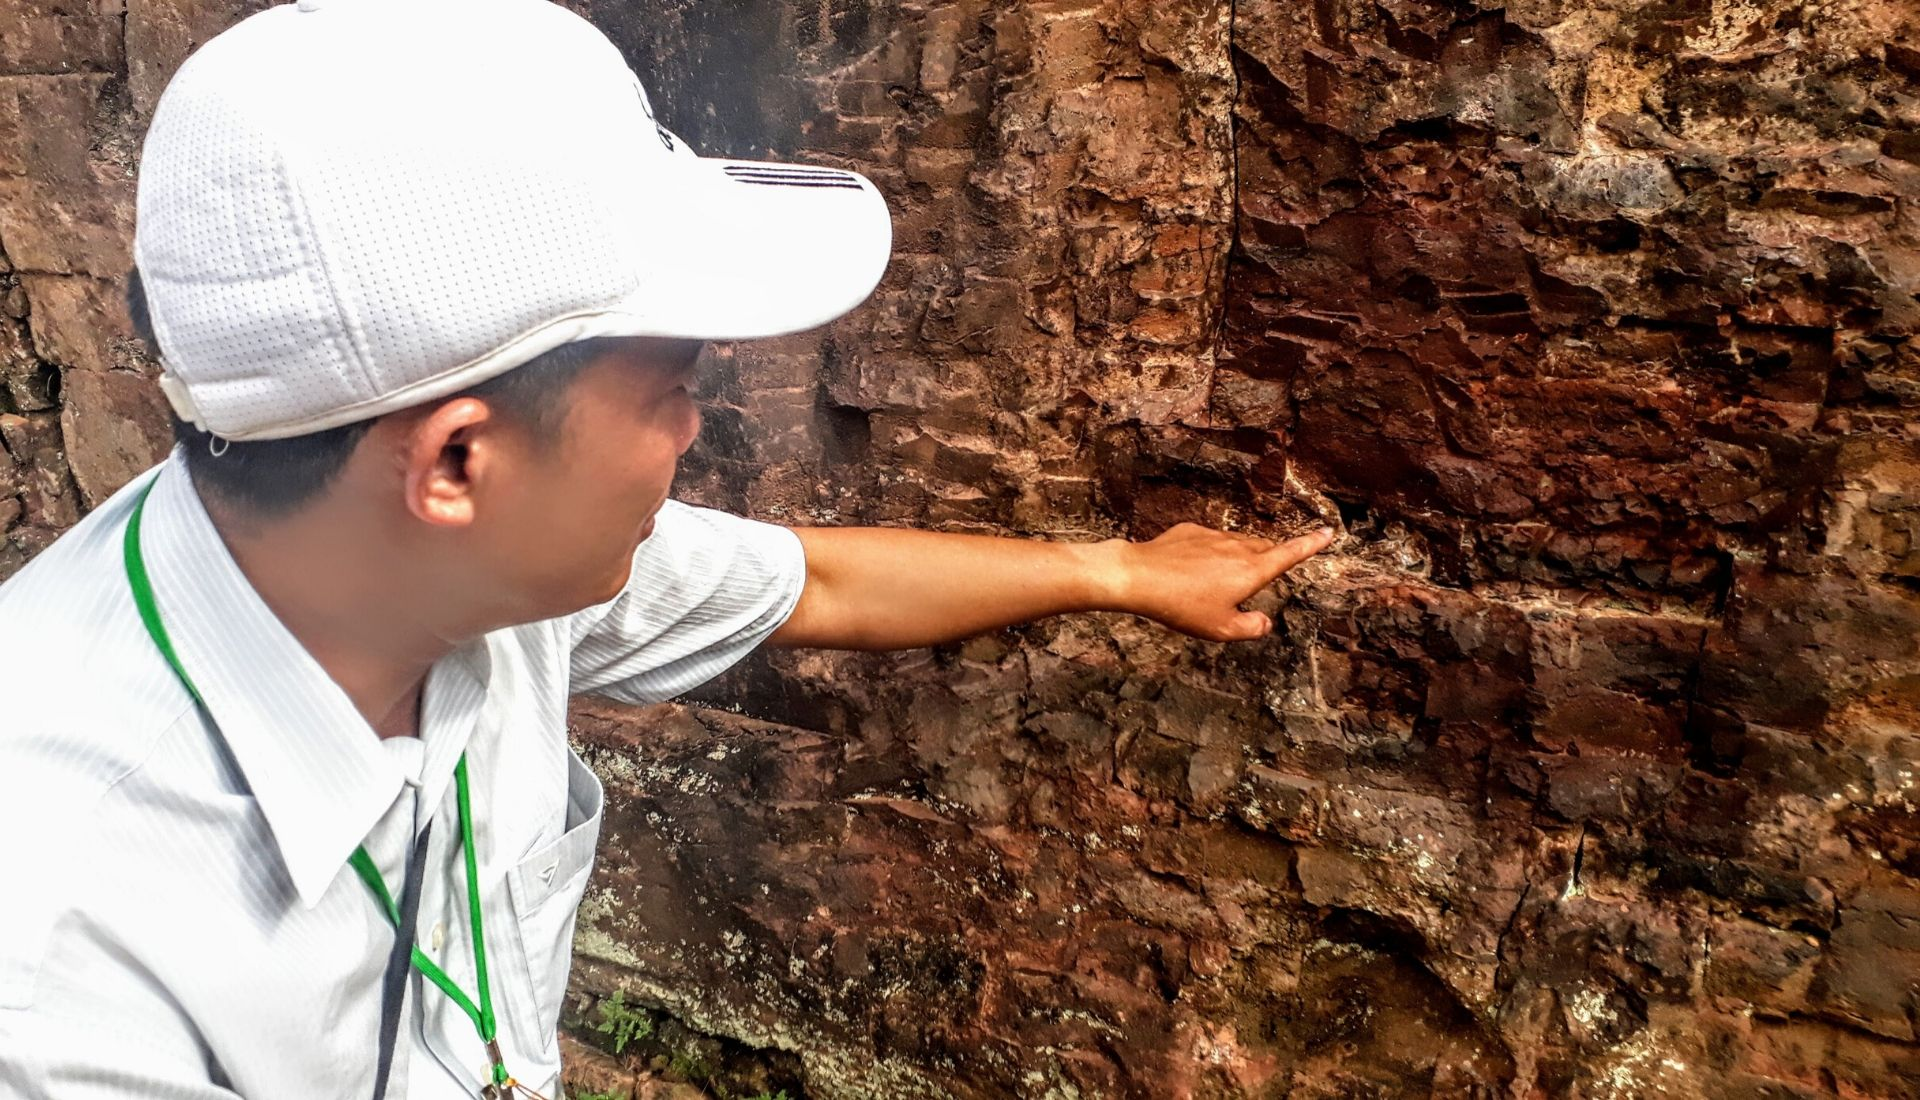 Our guide showing the brick formation that is still a mystery